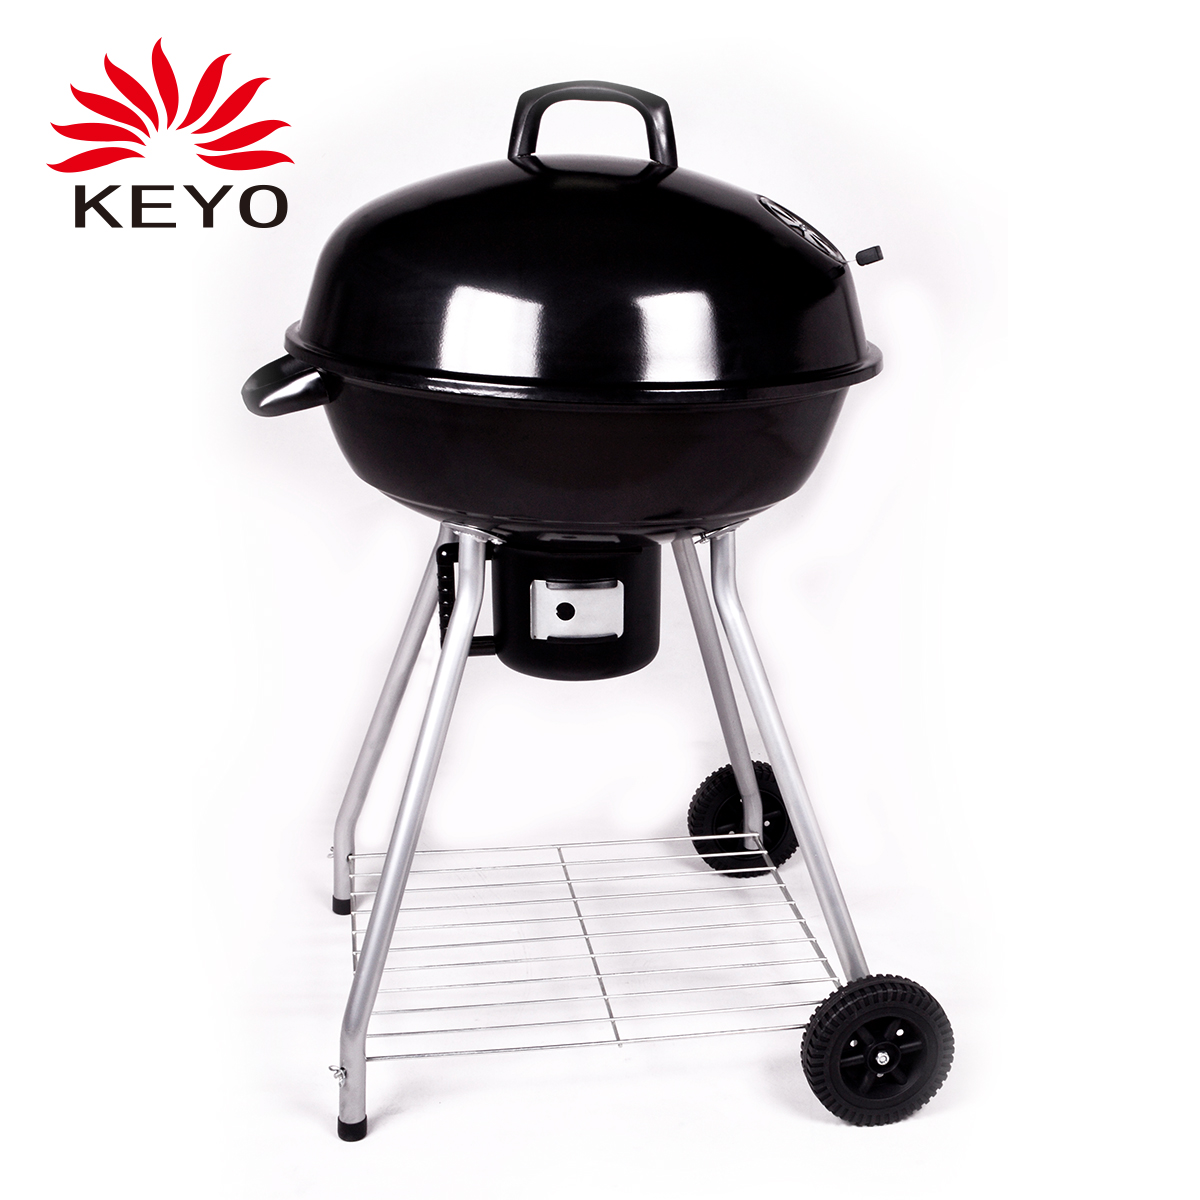 KY4524D Trolley BBQ Grill